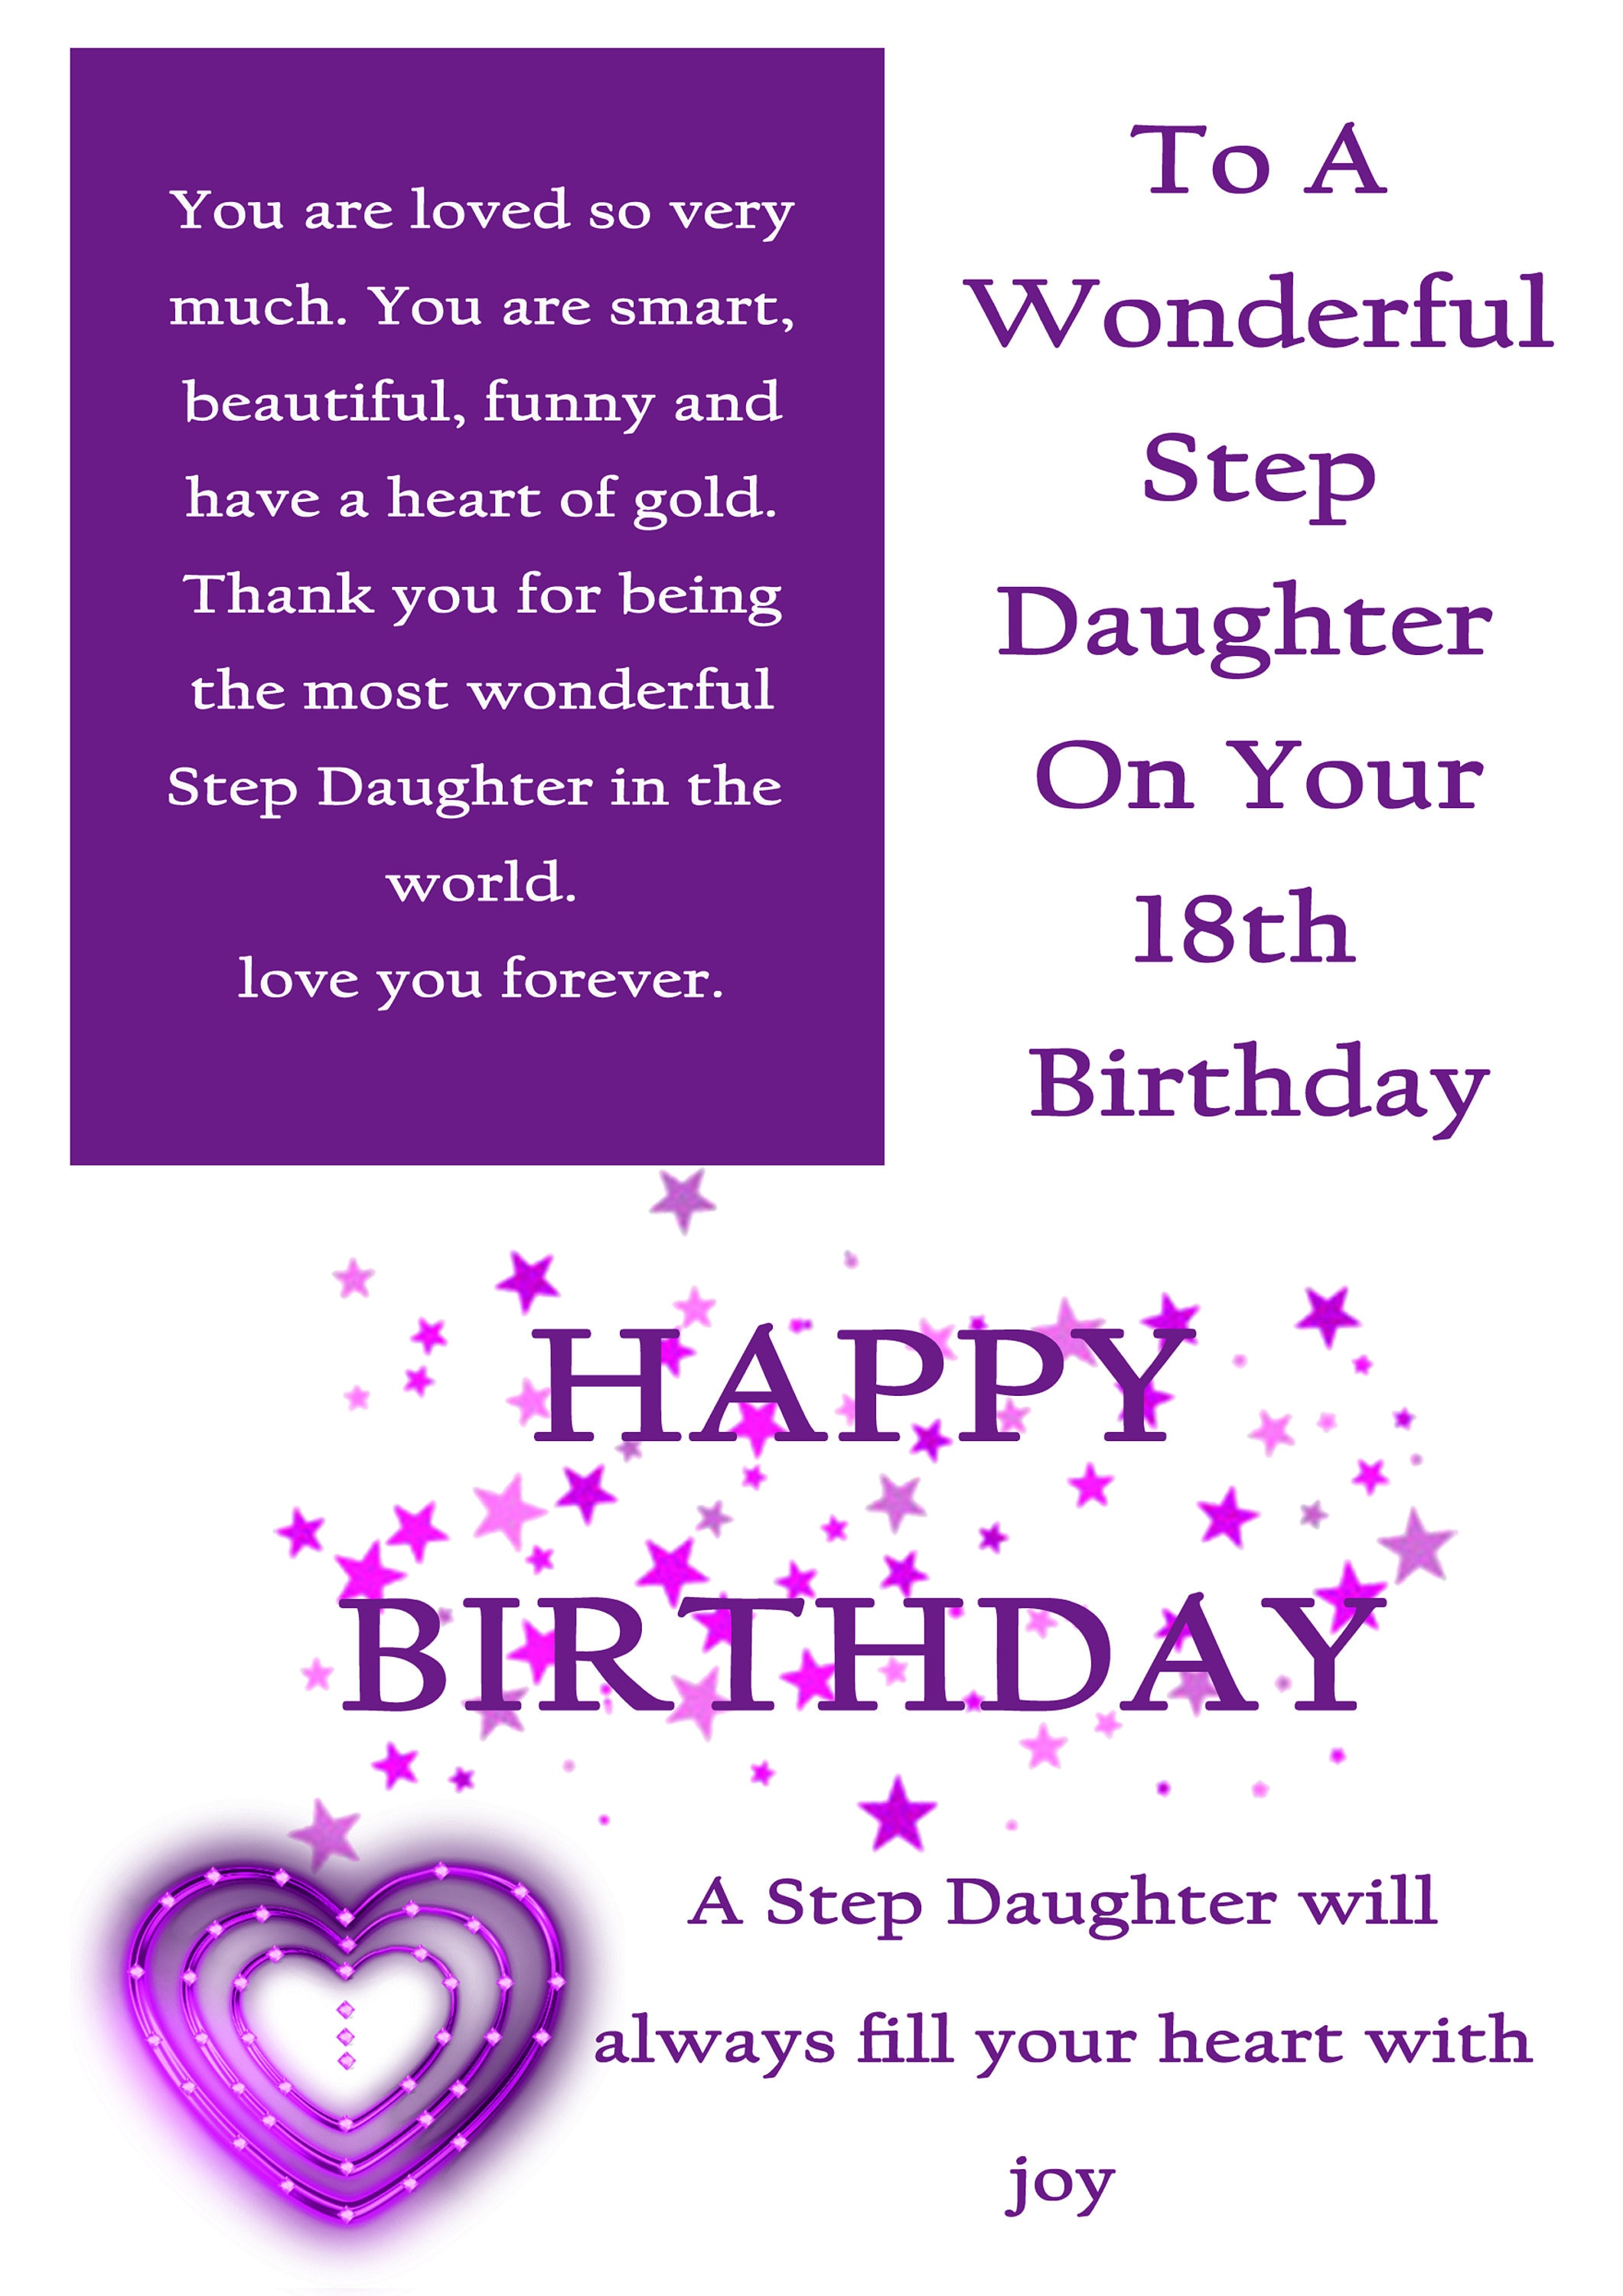 Step Daughter 18 Birthday Card With Removable Laminate